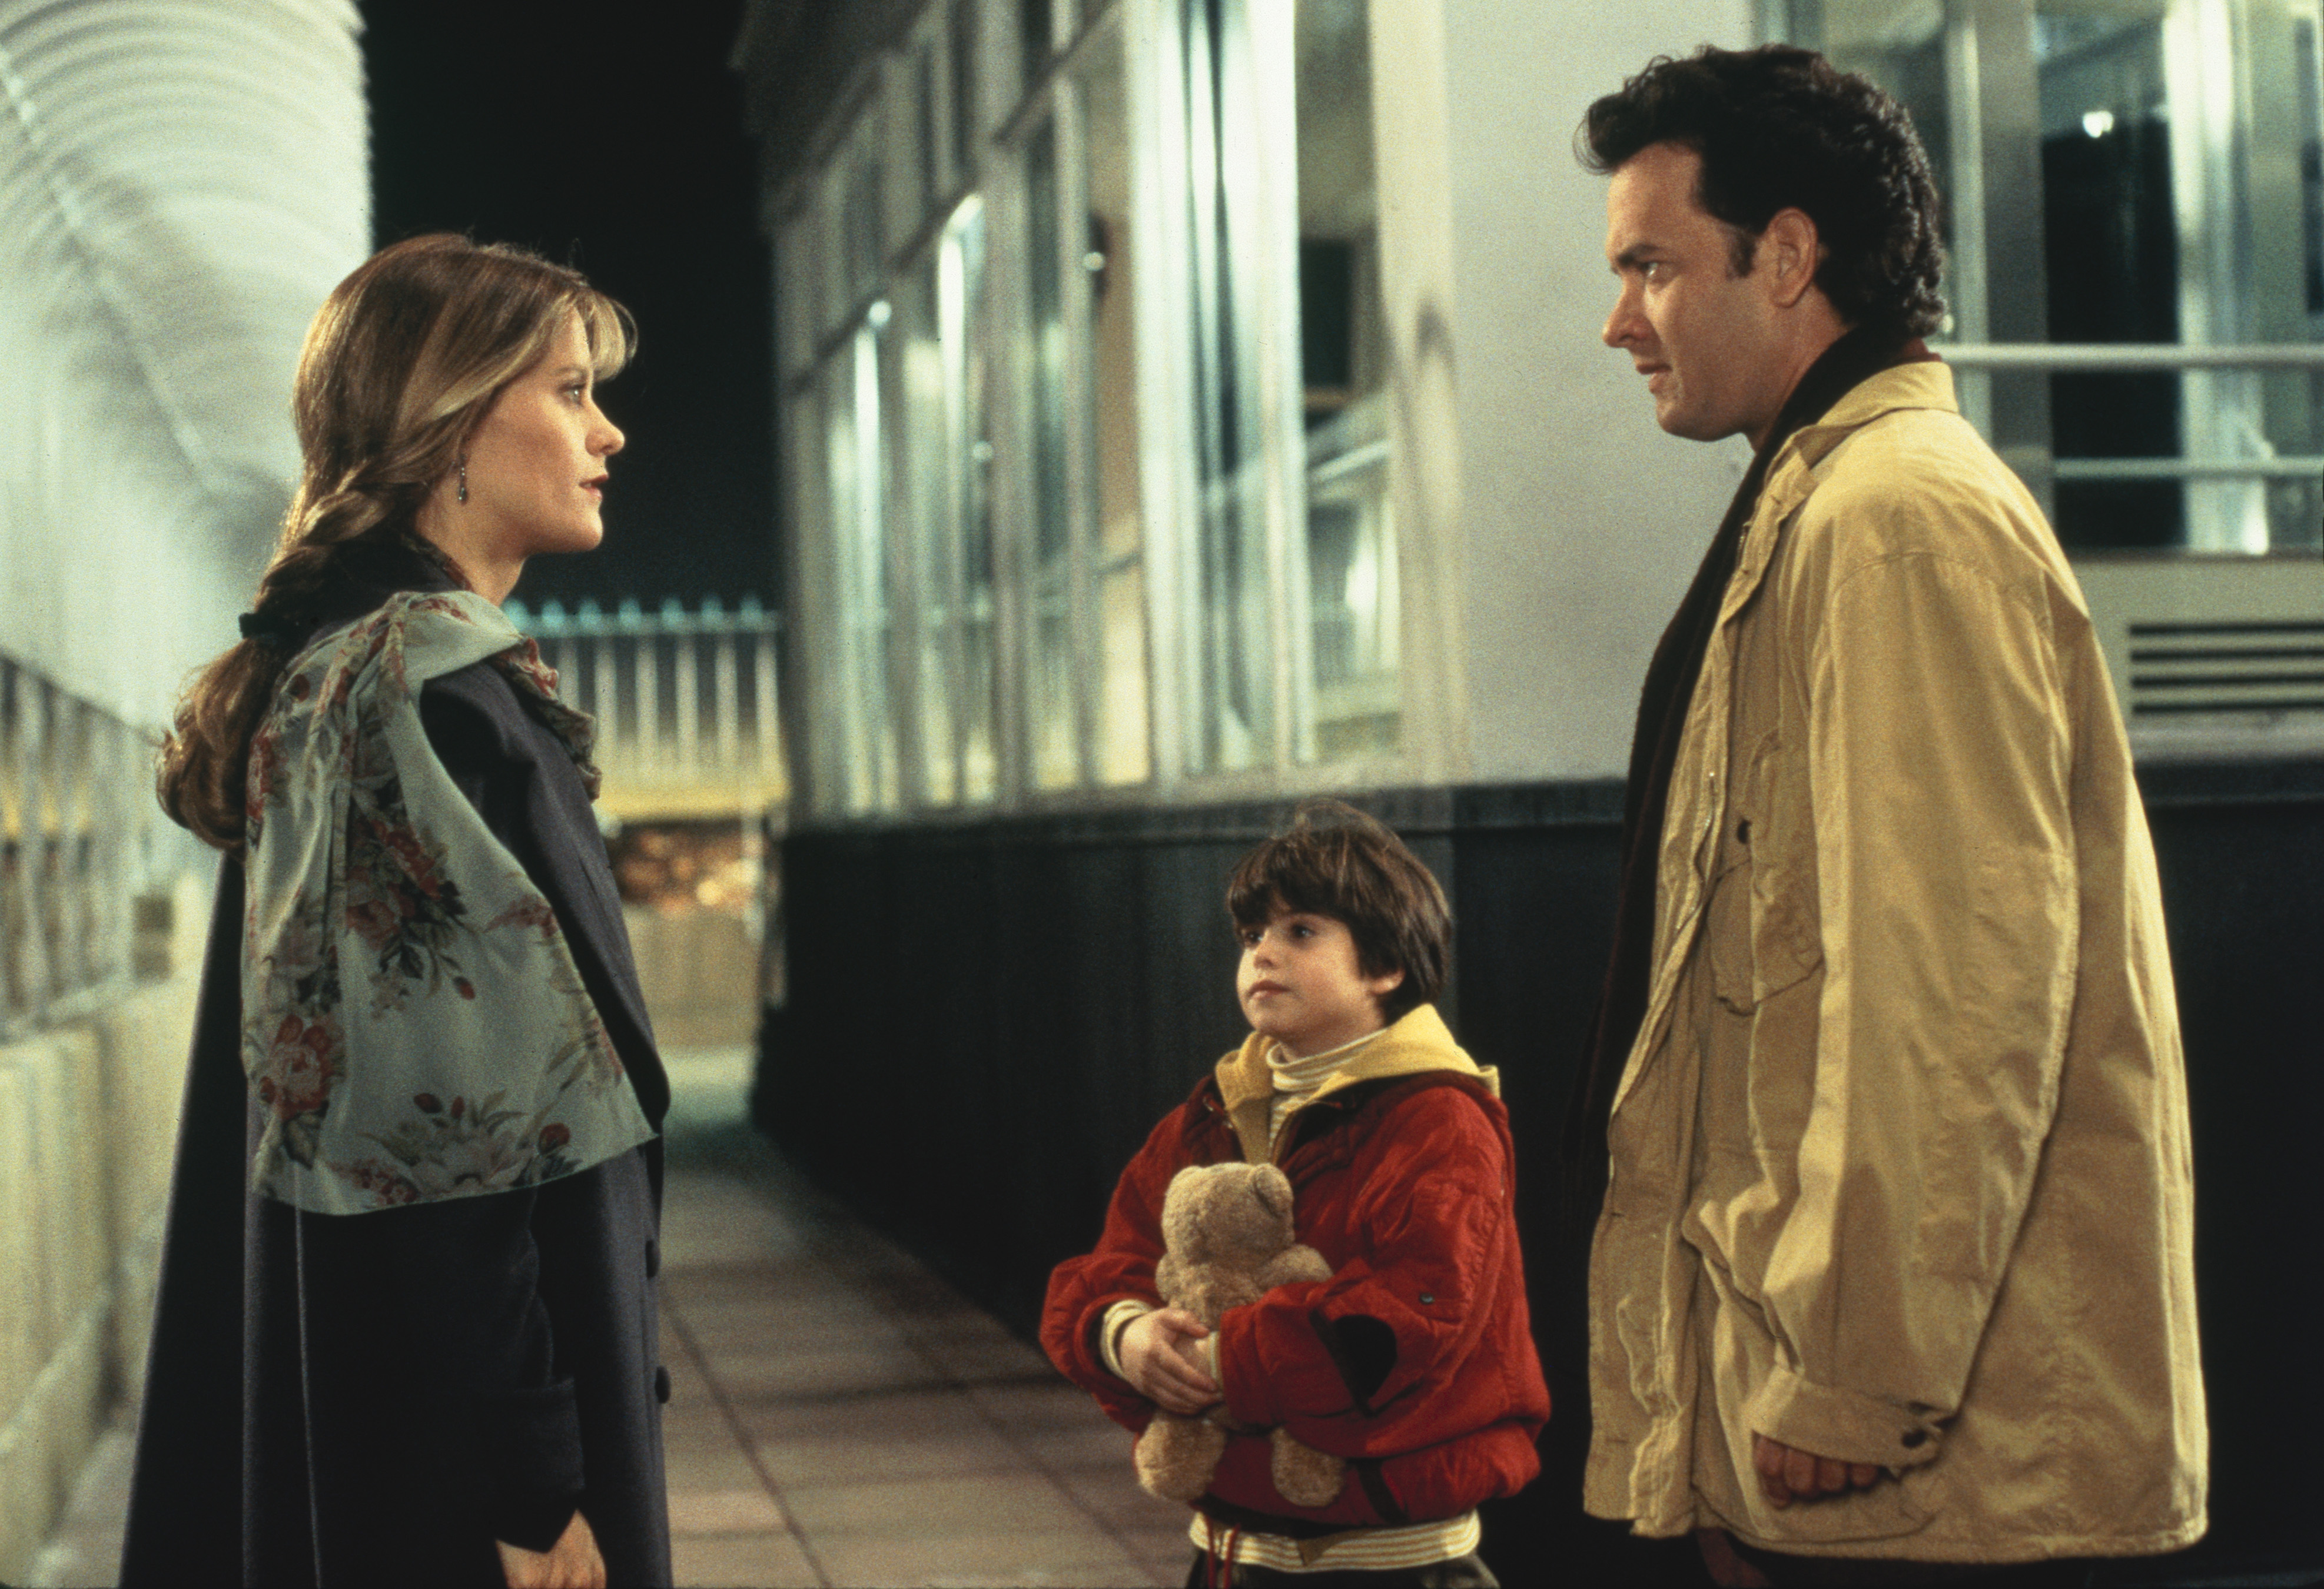 12. Sleepless in Seattle (1993): A sequel is needed to know what happened between Tom Hanks and Meg Ryan's characters after they got in the elevator.